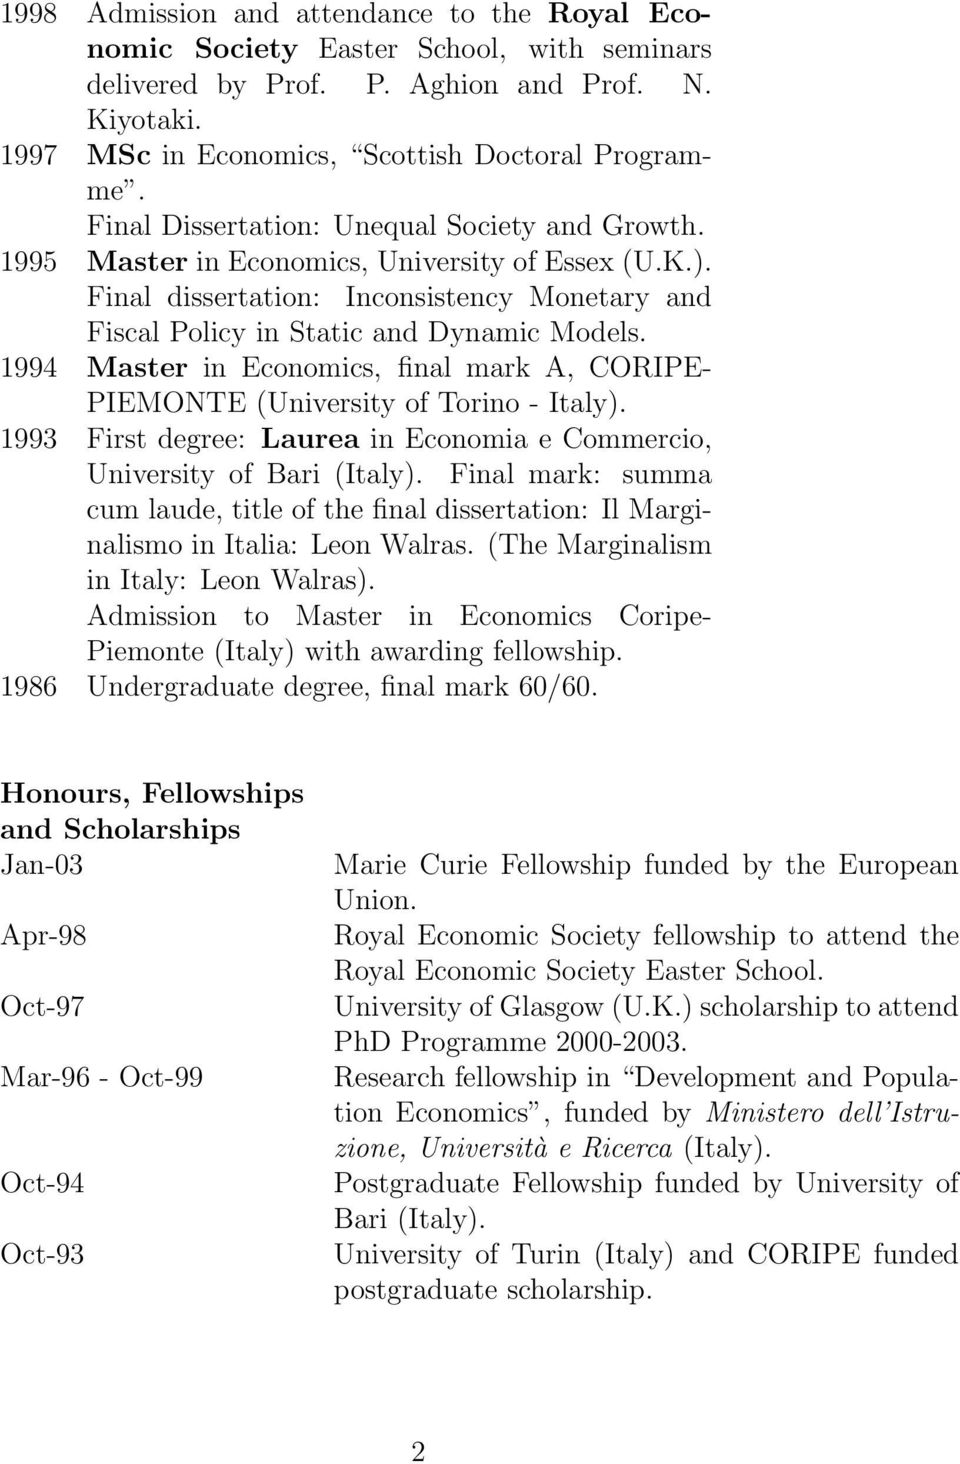 1994 Master in Economics, final mark A, CORIPE- PIEMONTE (University of Torino - Italy). 1993 First degree: Laurea in Economia e Commercio, University of Bari (Italy).